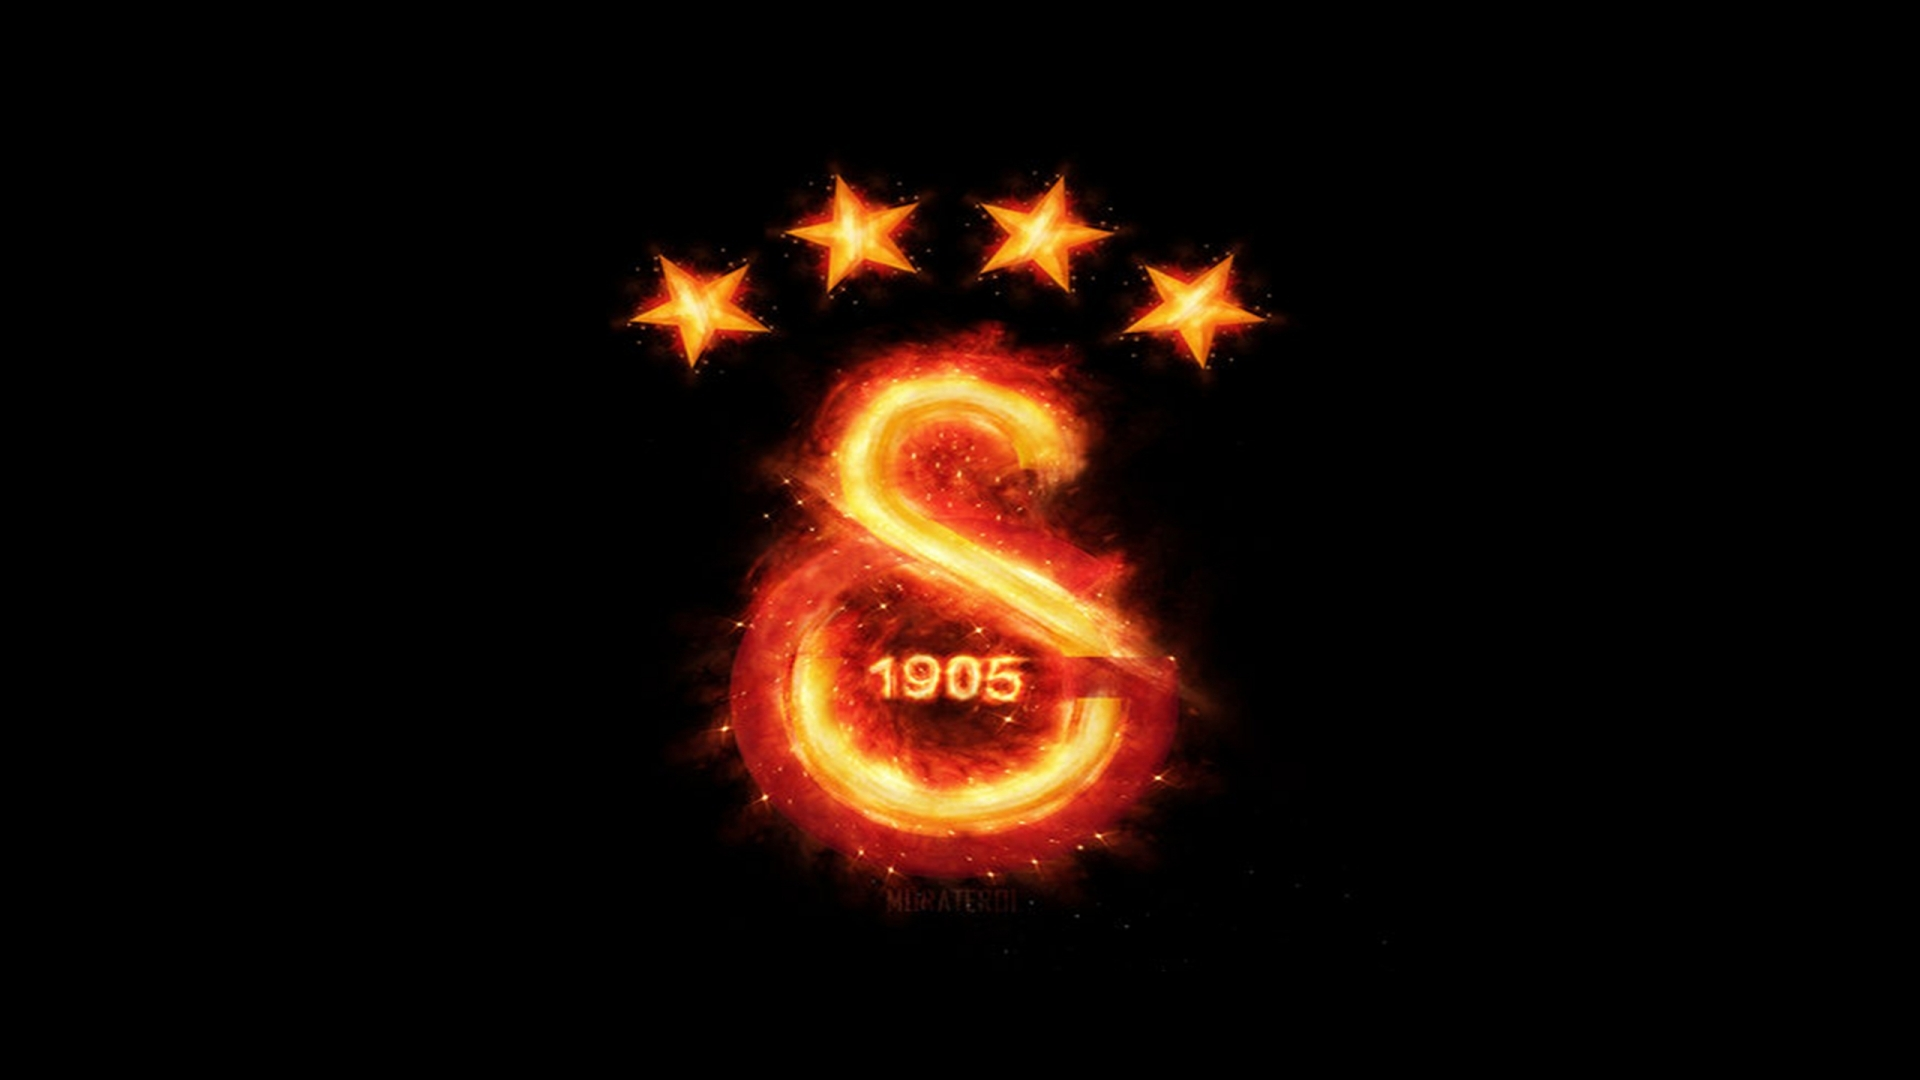 Hd Galatasaray Wallpaper Full Hd Pictures